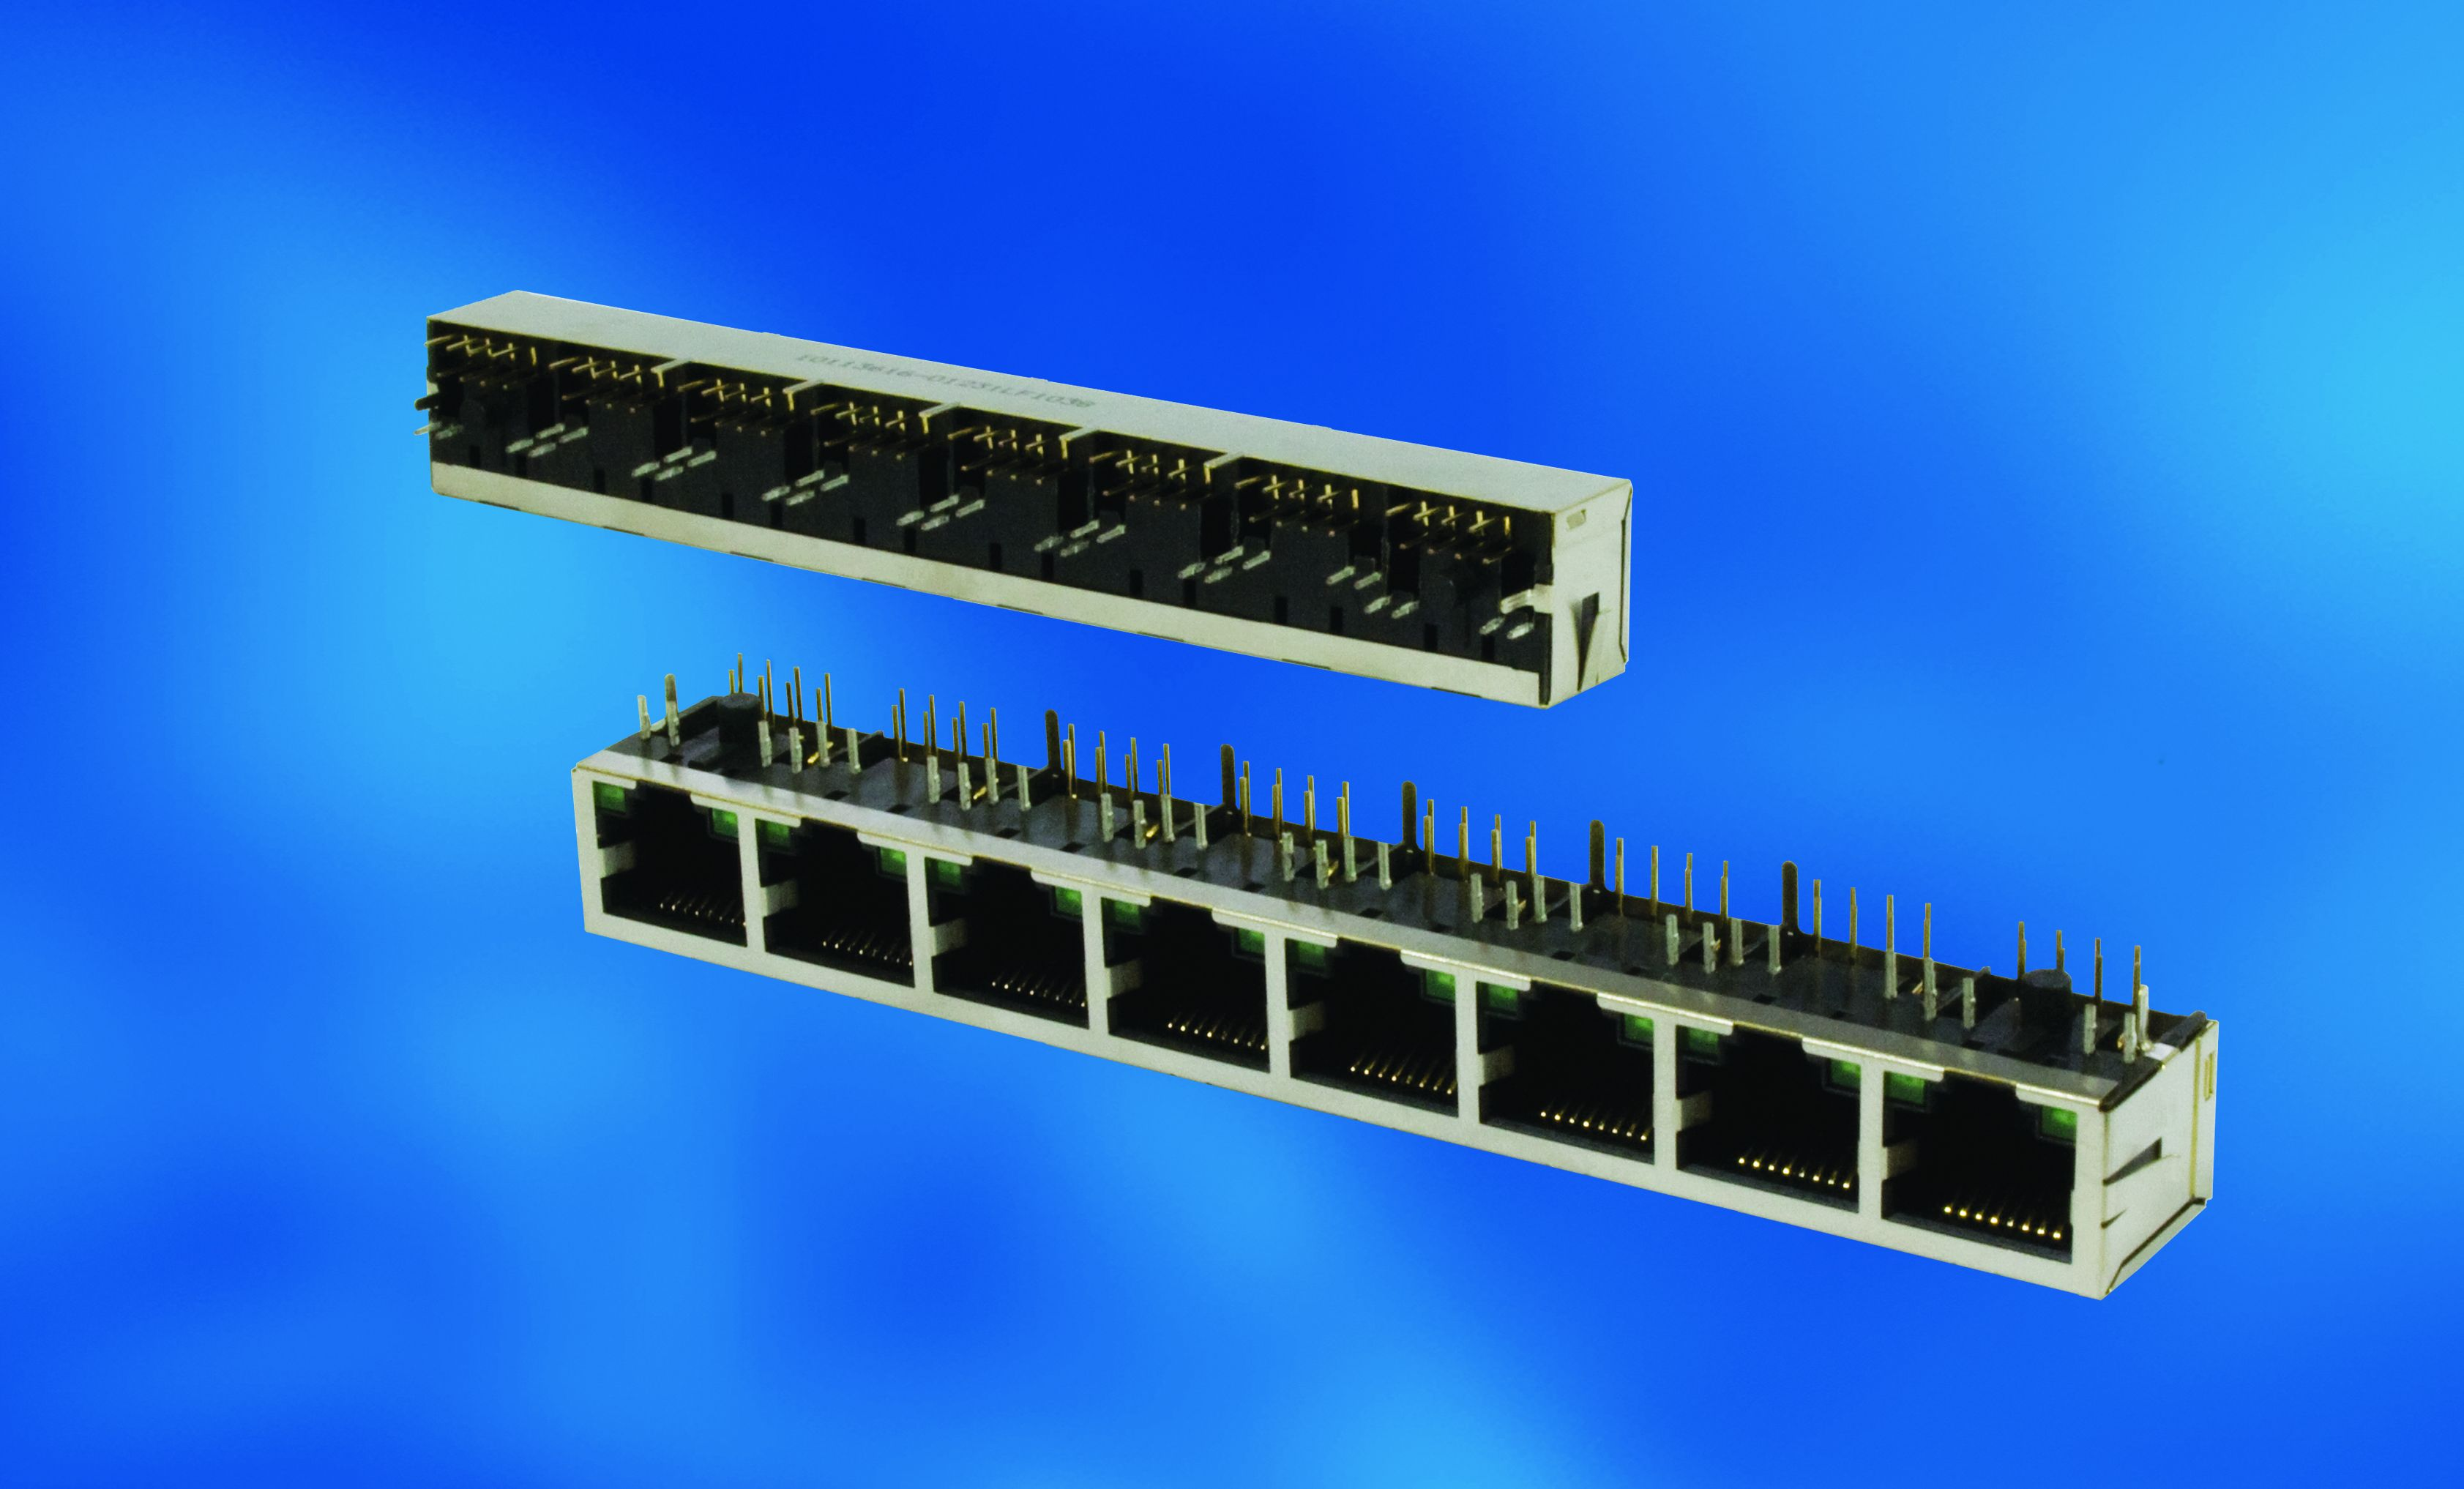 FCI Introduces RJ45 1x8 Modular Jack for GPON Systems